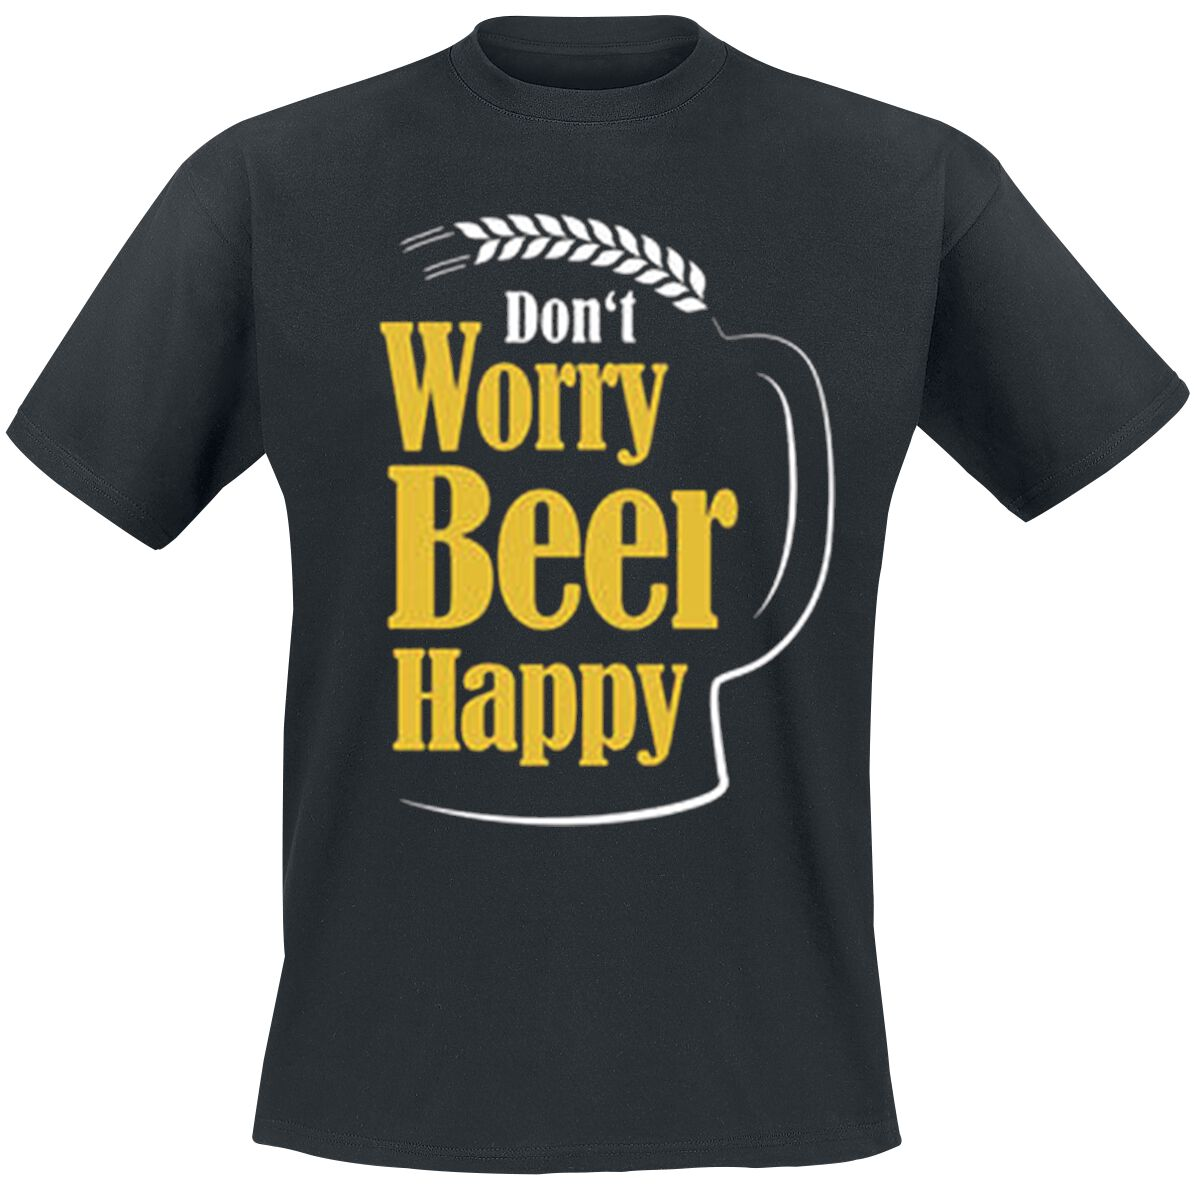 Fun Shirts - Koszulki - T-Shirt Don't Worry Beer Happy T-Shirt czarny - 332416